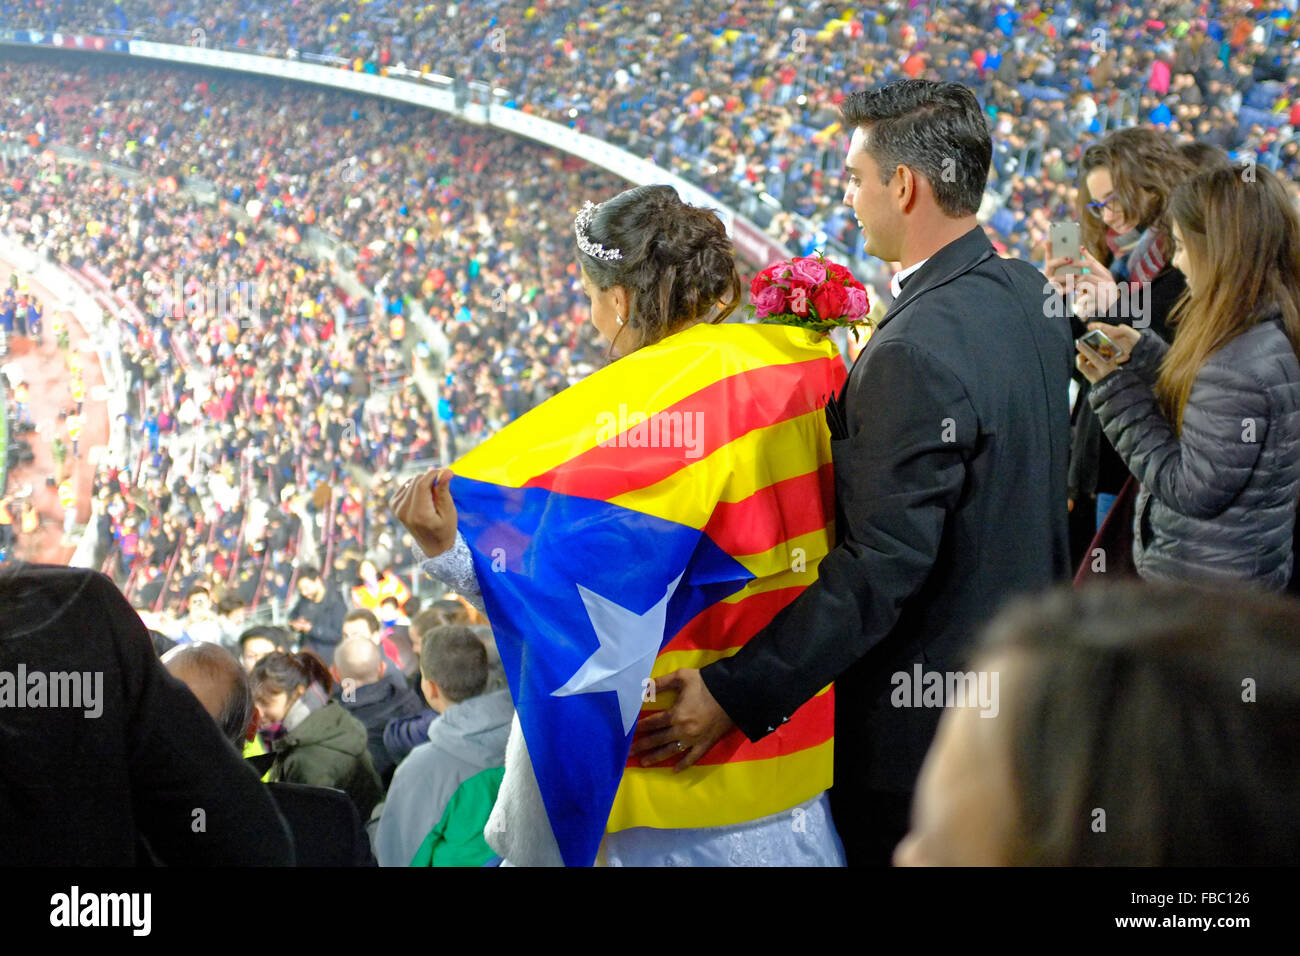 a newly married couple in the crowd at the nou camp/ camp nou stadium in barcelona during a copa del rey match - Stock Image